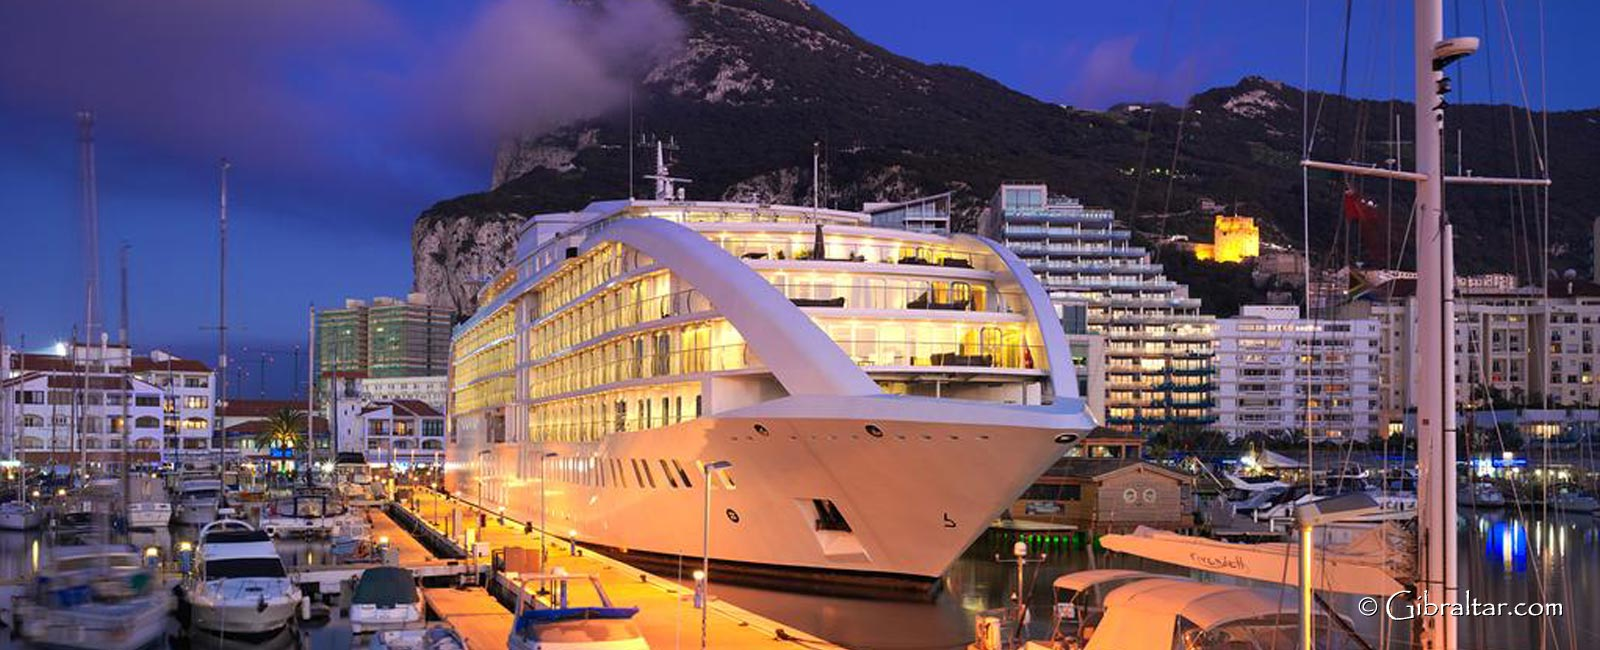 A stay aboard Sunborn Hotel in Gibraltar presents visitors with the opportunity to enjoy a unique experience: the privacy and exclusivity of an ocean-going superyacht combined with the quality and comfort of a five-star hotel – it's a persuasive proposition.